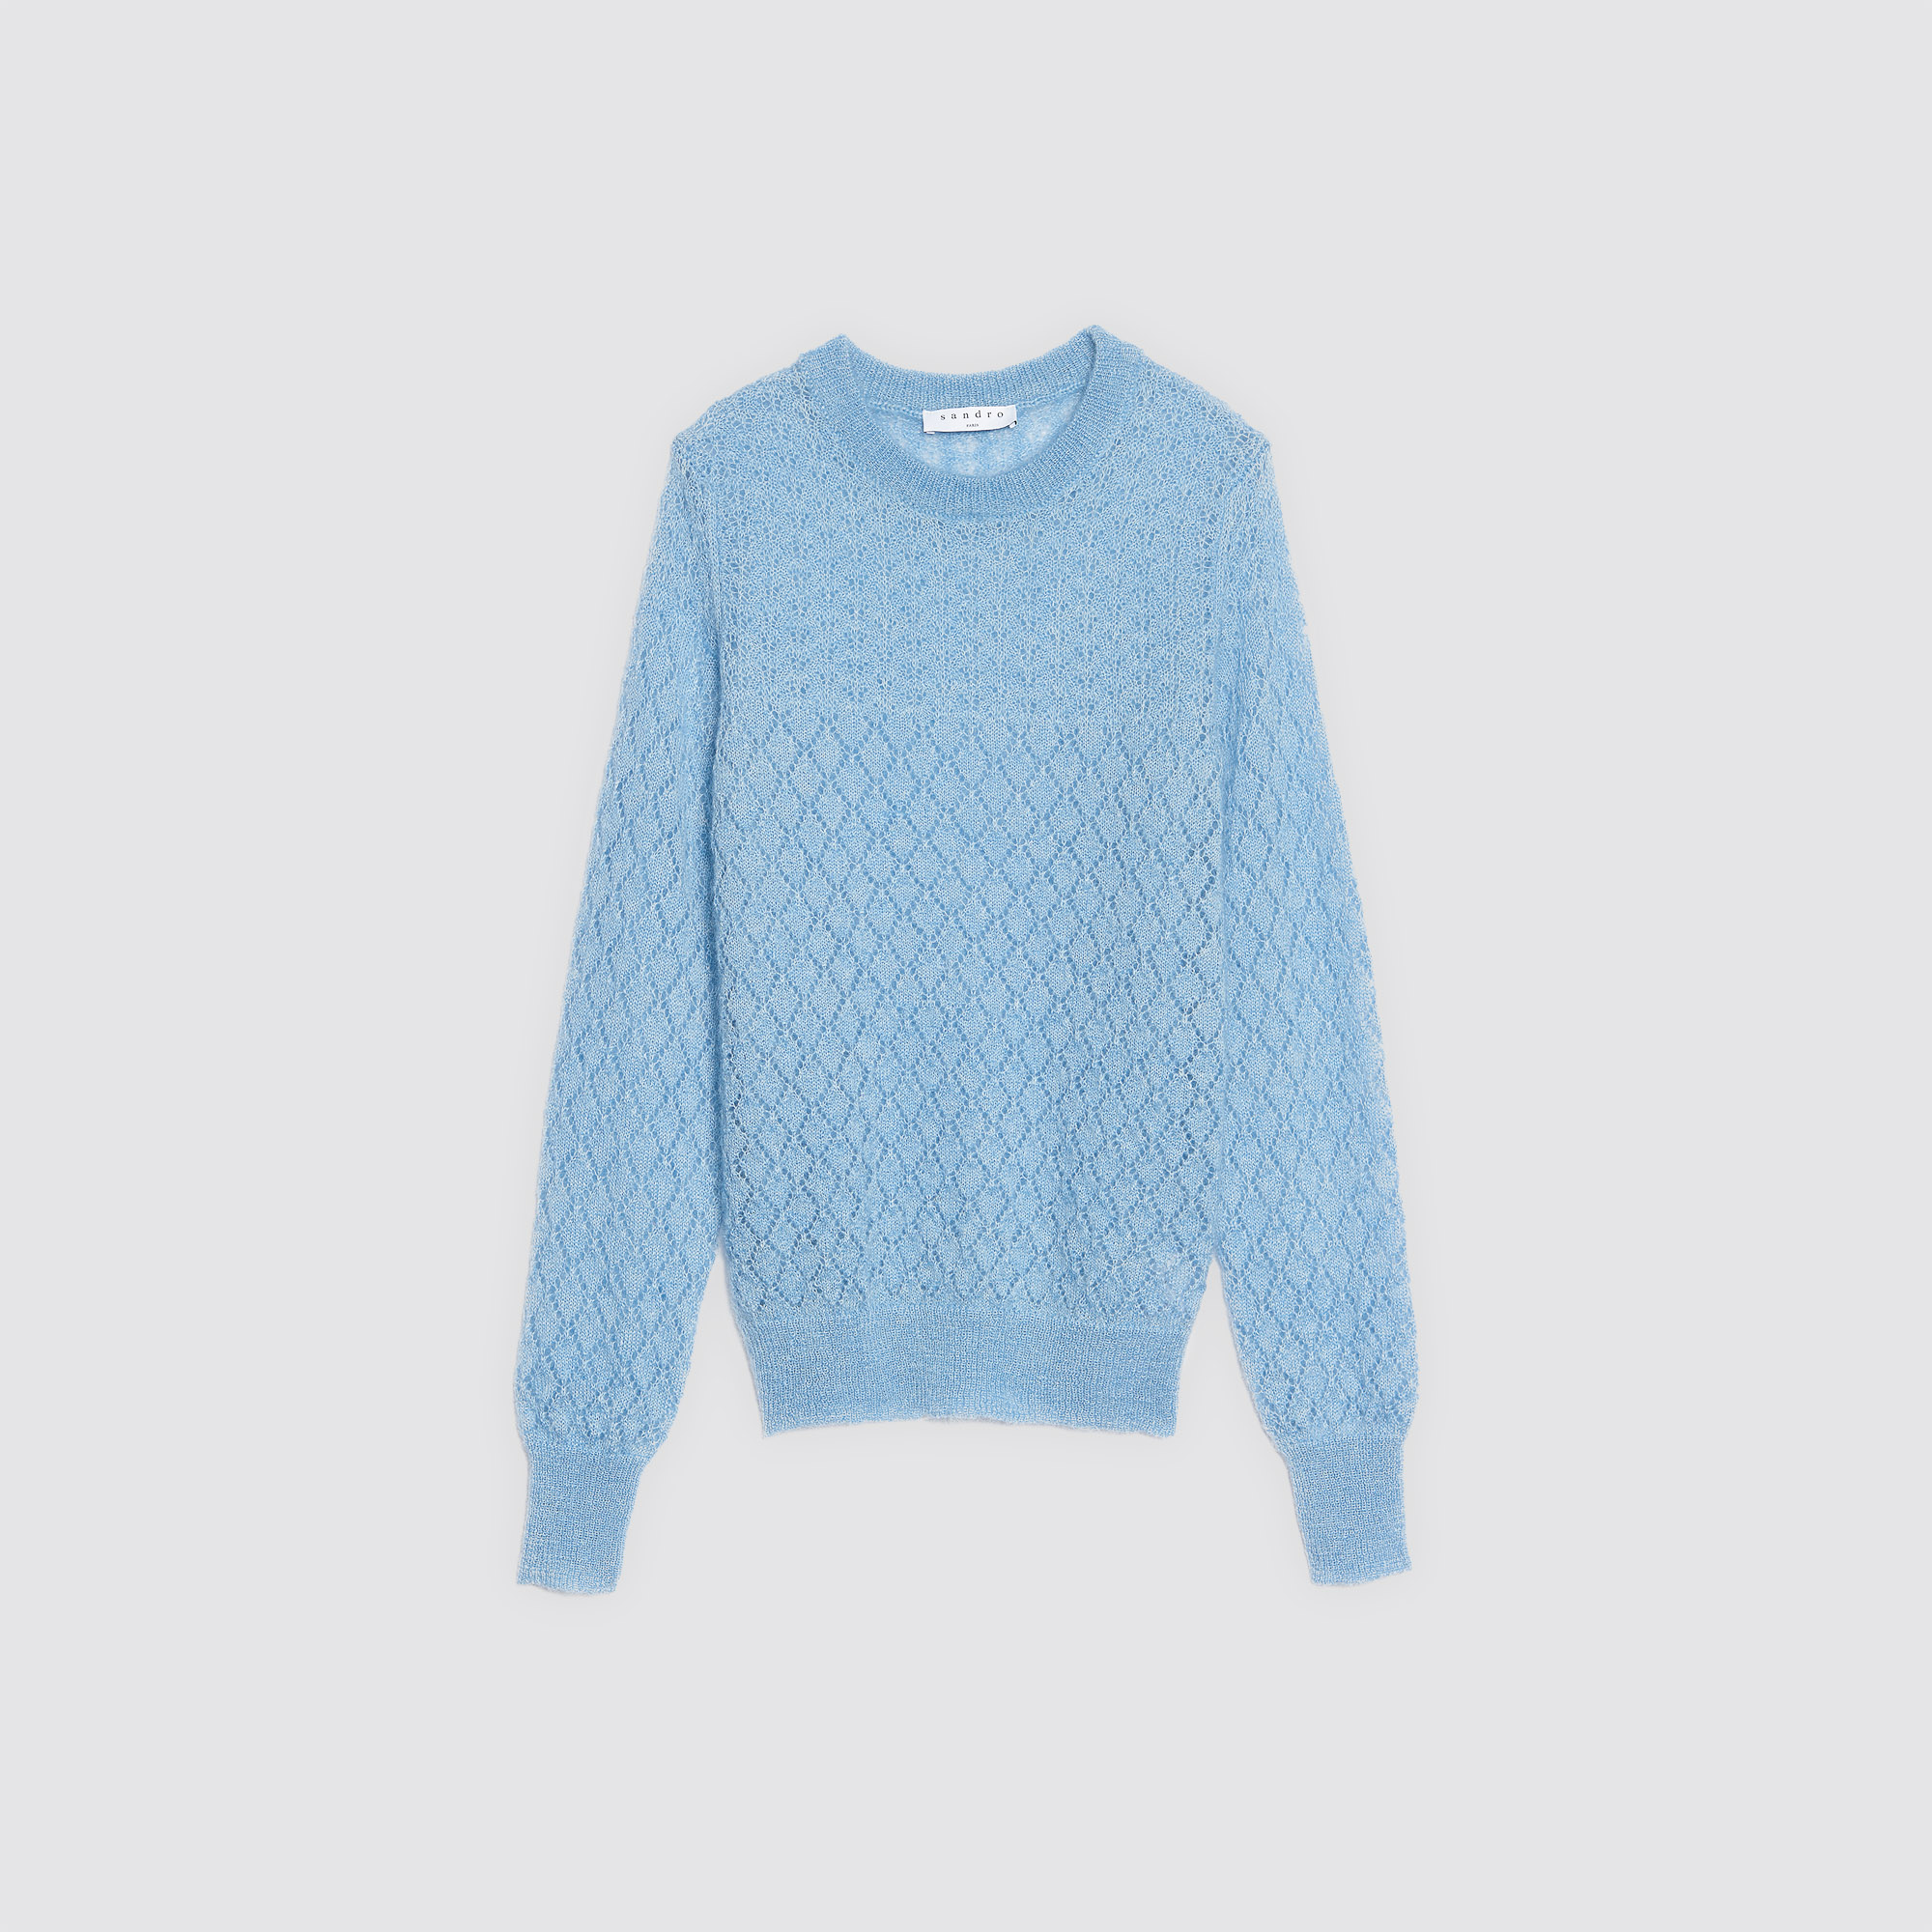 Decorative knit mohair and silk sweater - Sweaters & Cardigans ...